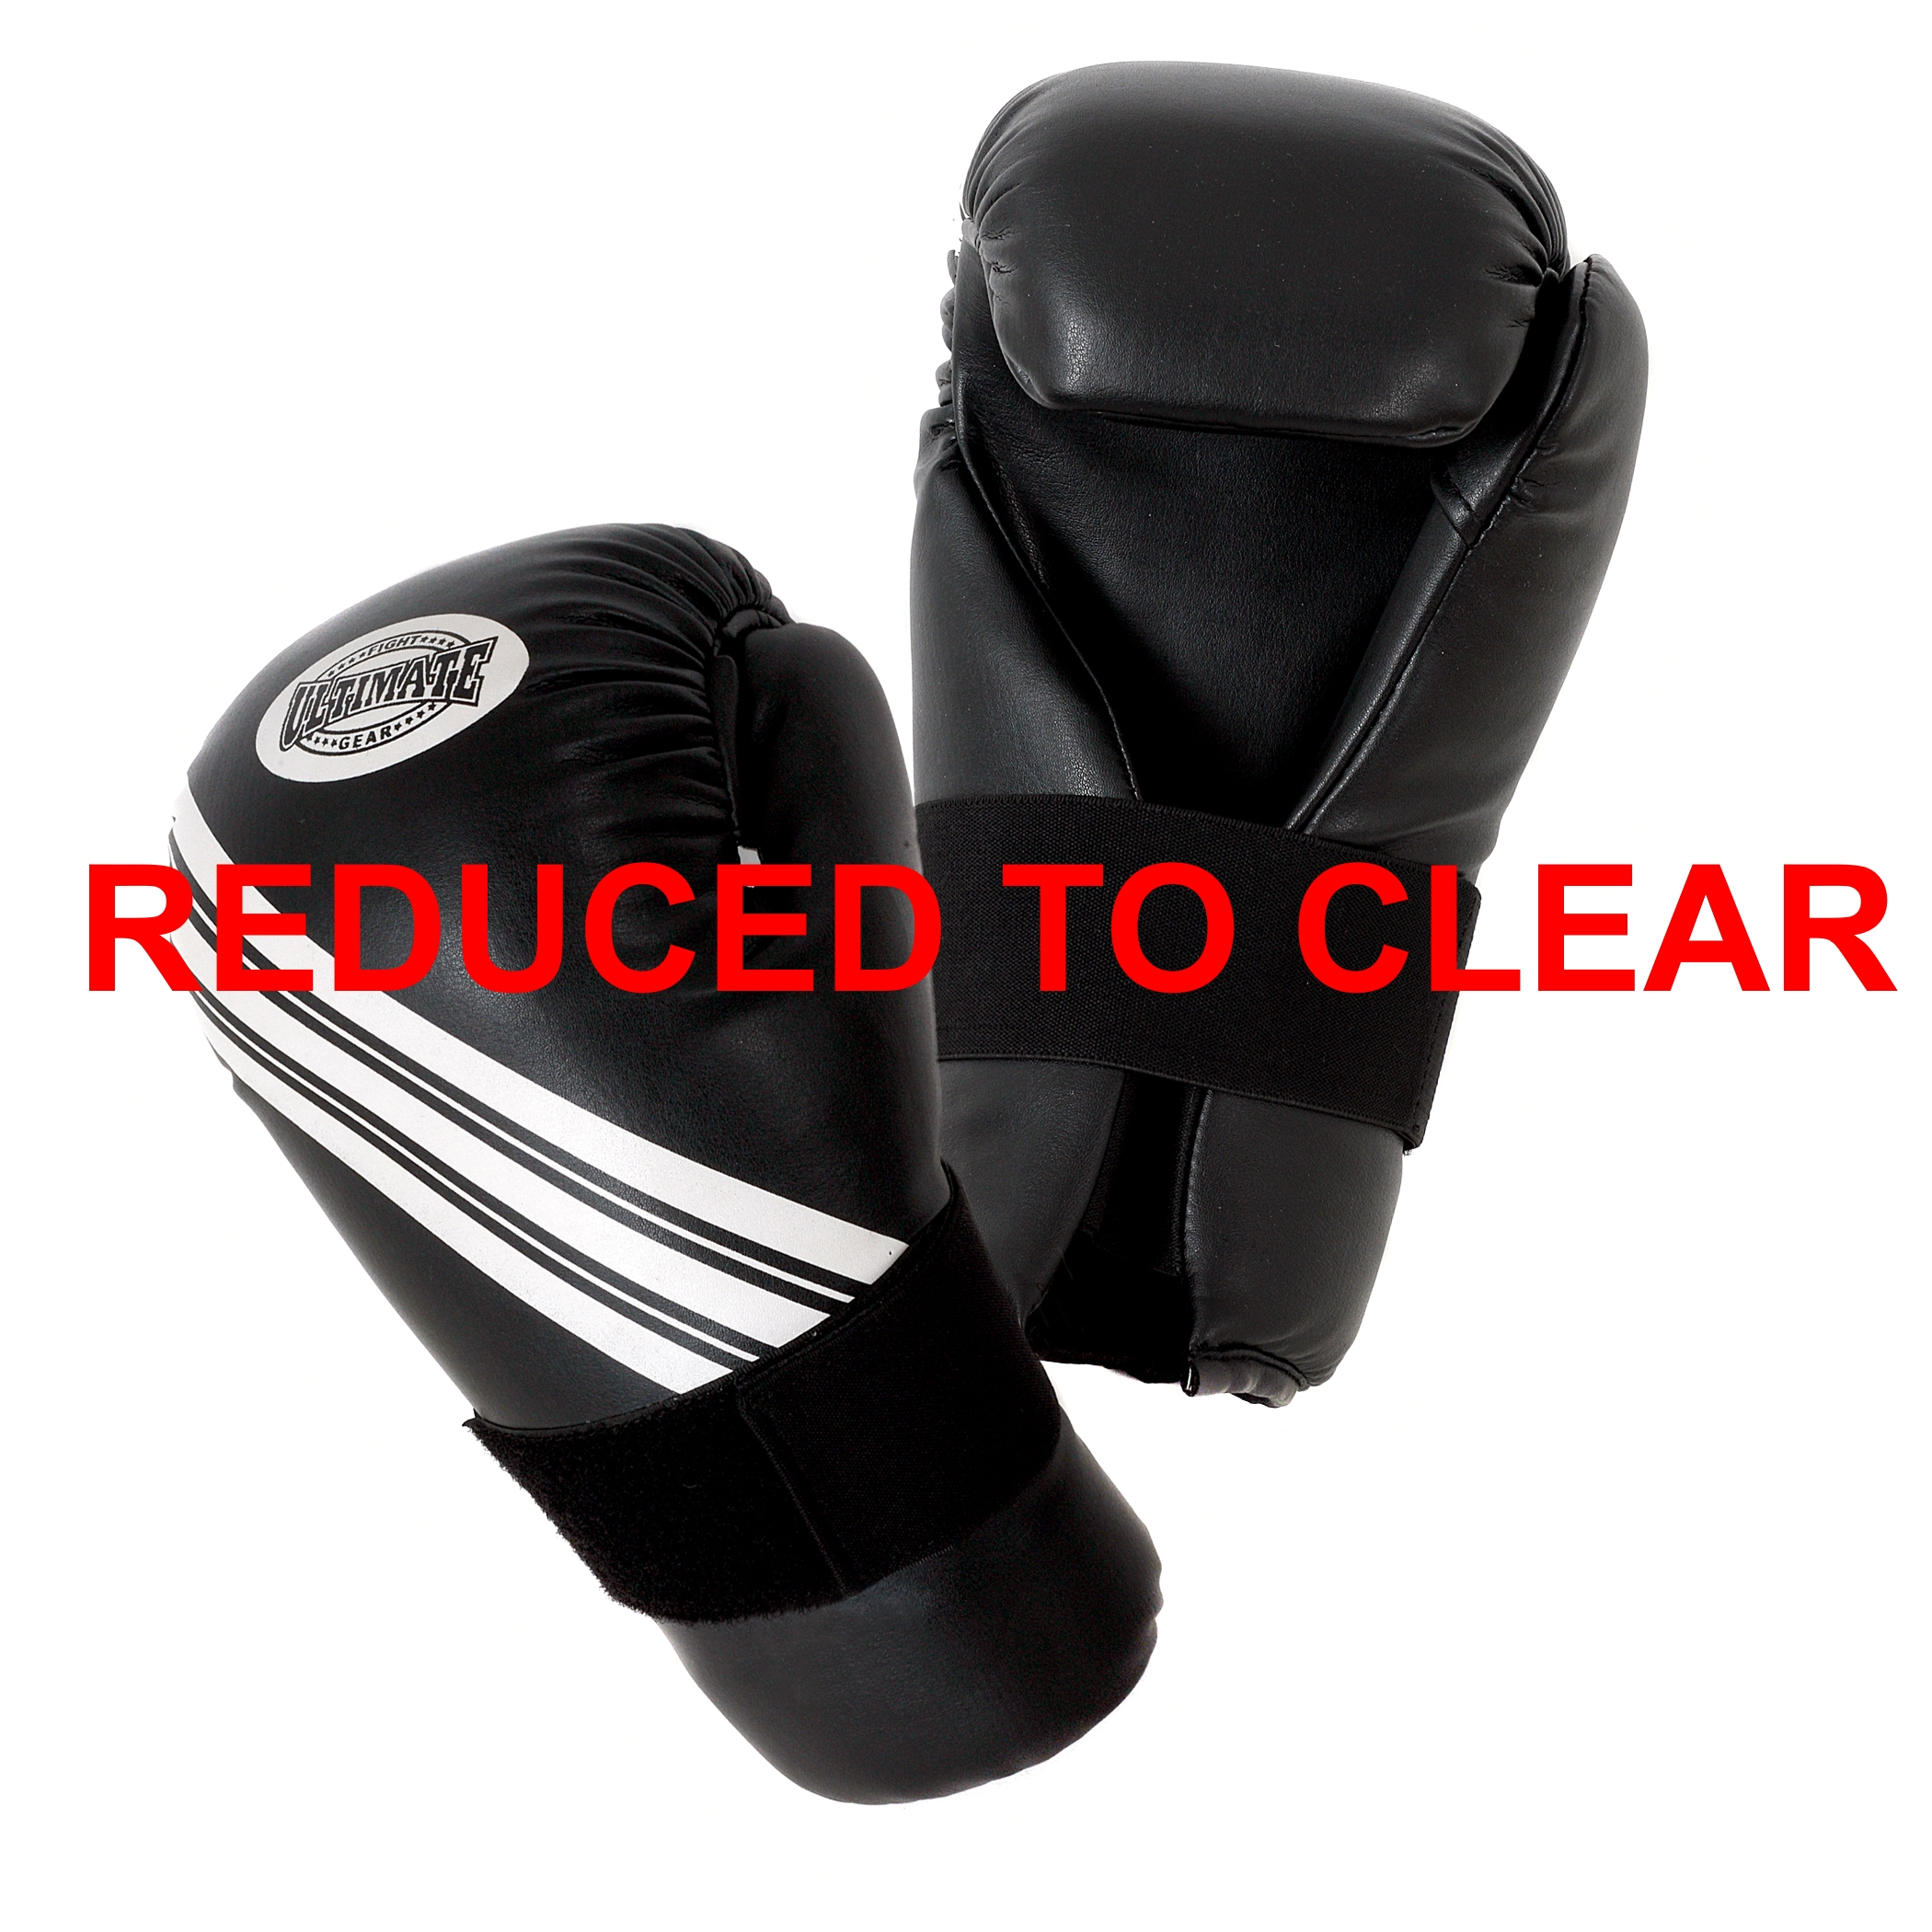 Ultimate Pro Black Ltd Edition Gloves